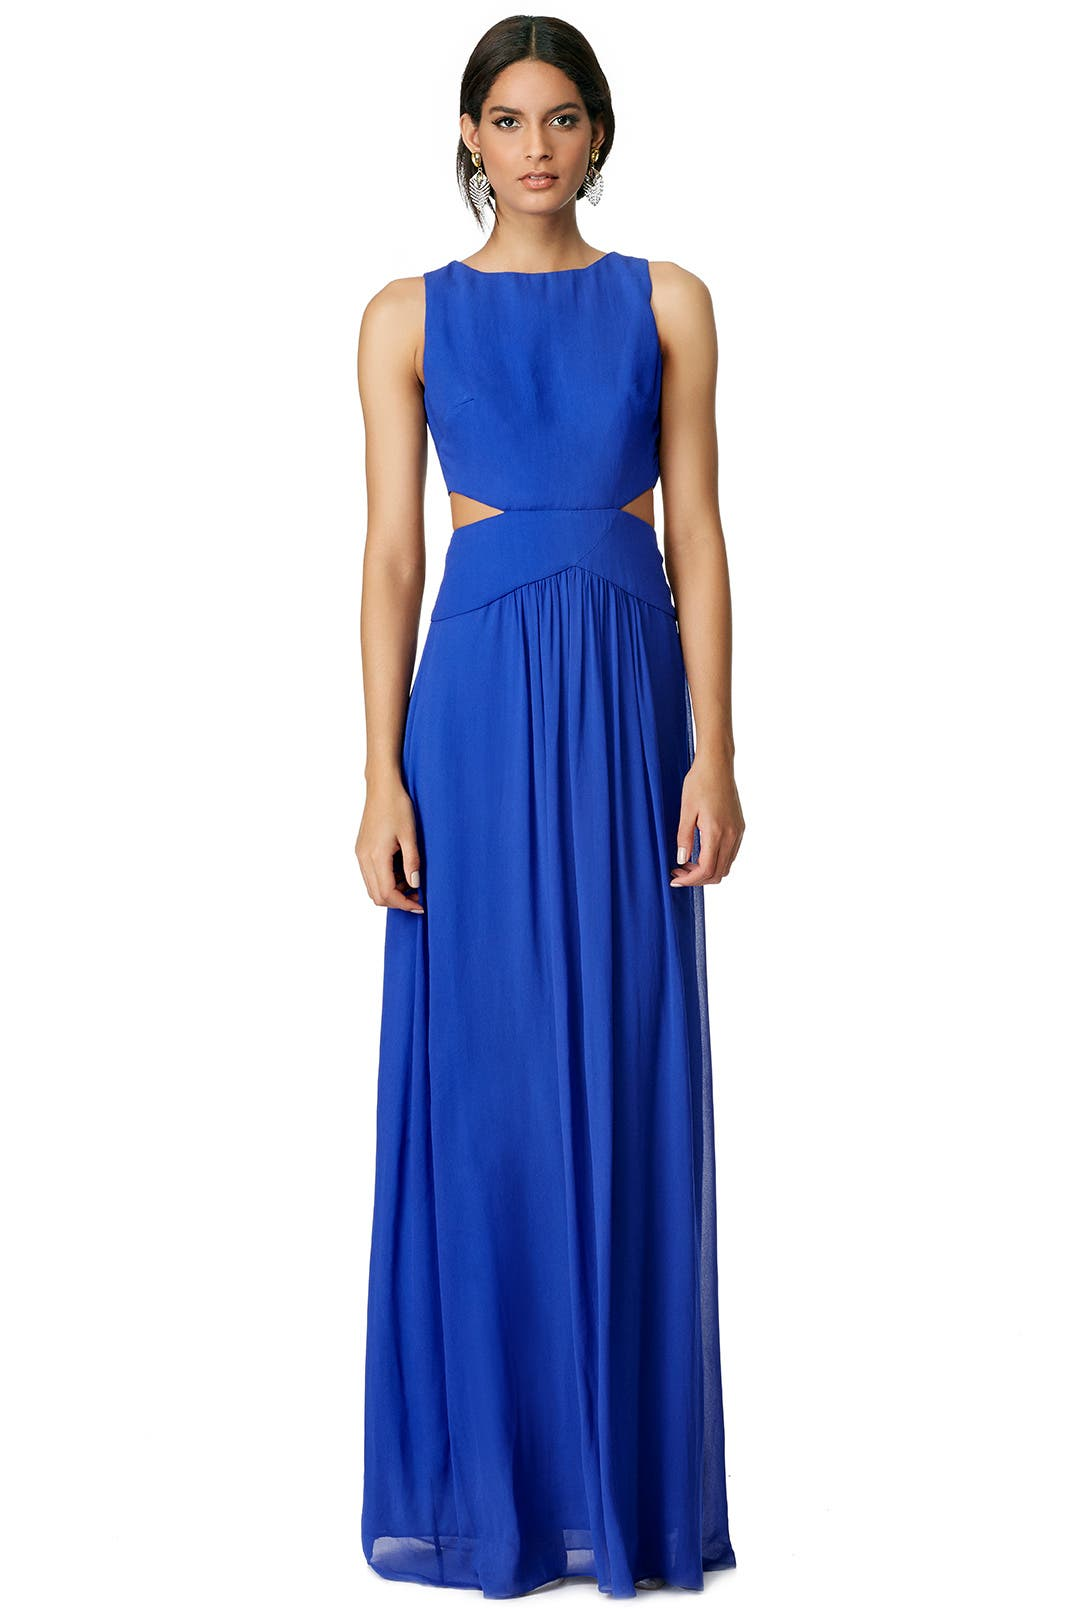 Bound in Blue Gown by Nicole Miller for $138  Rent the Runway